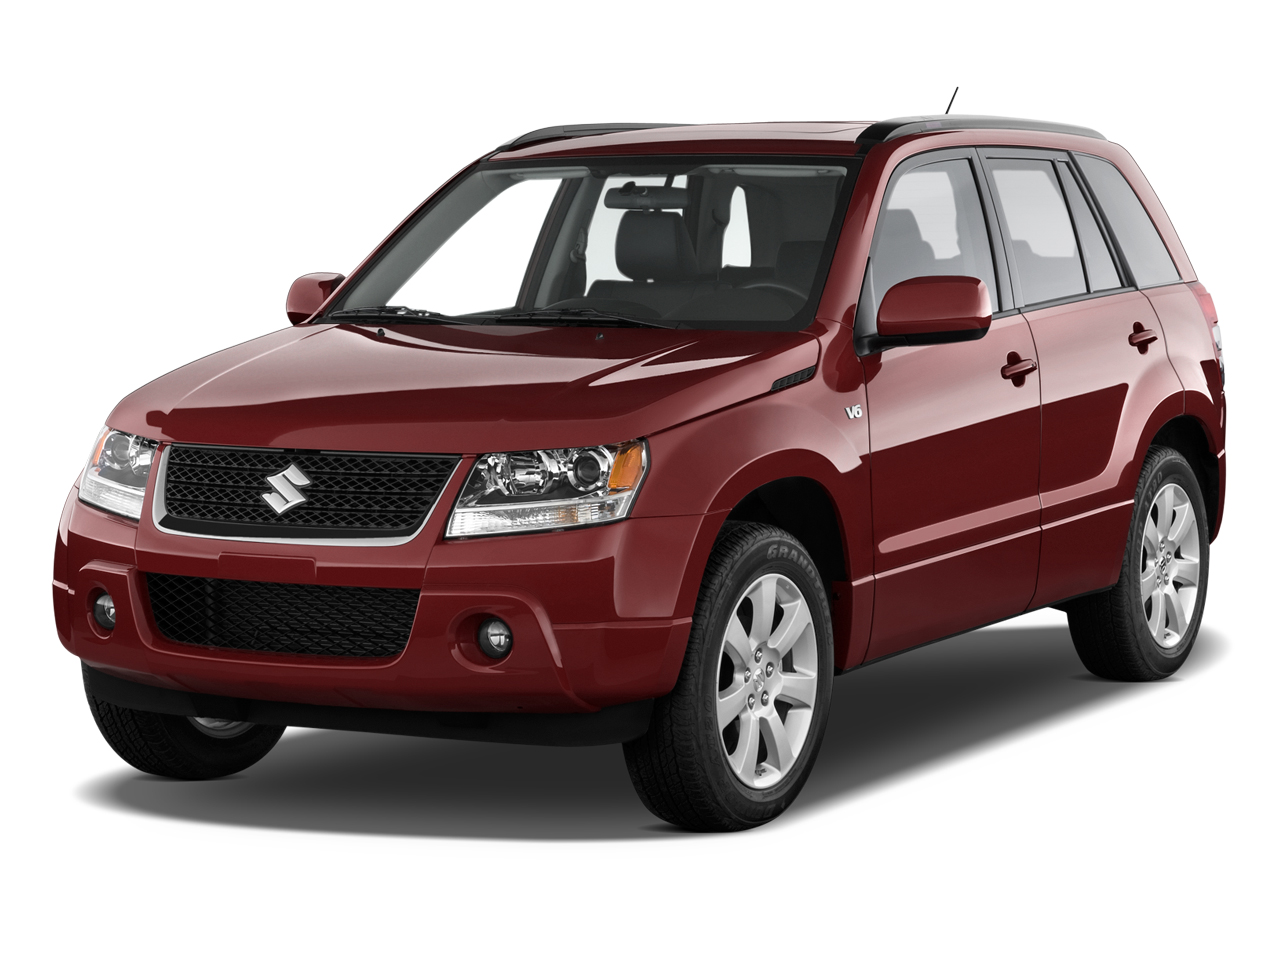 2010 suzuki grand vitara review ratings specs prices and photos the car connection. Black Bedroom Furniture Sets. Home Design Ideas